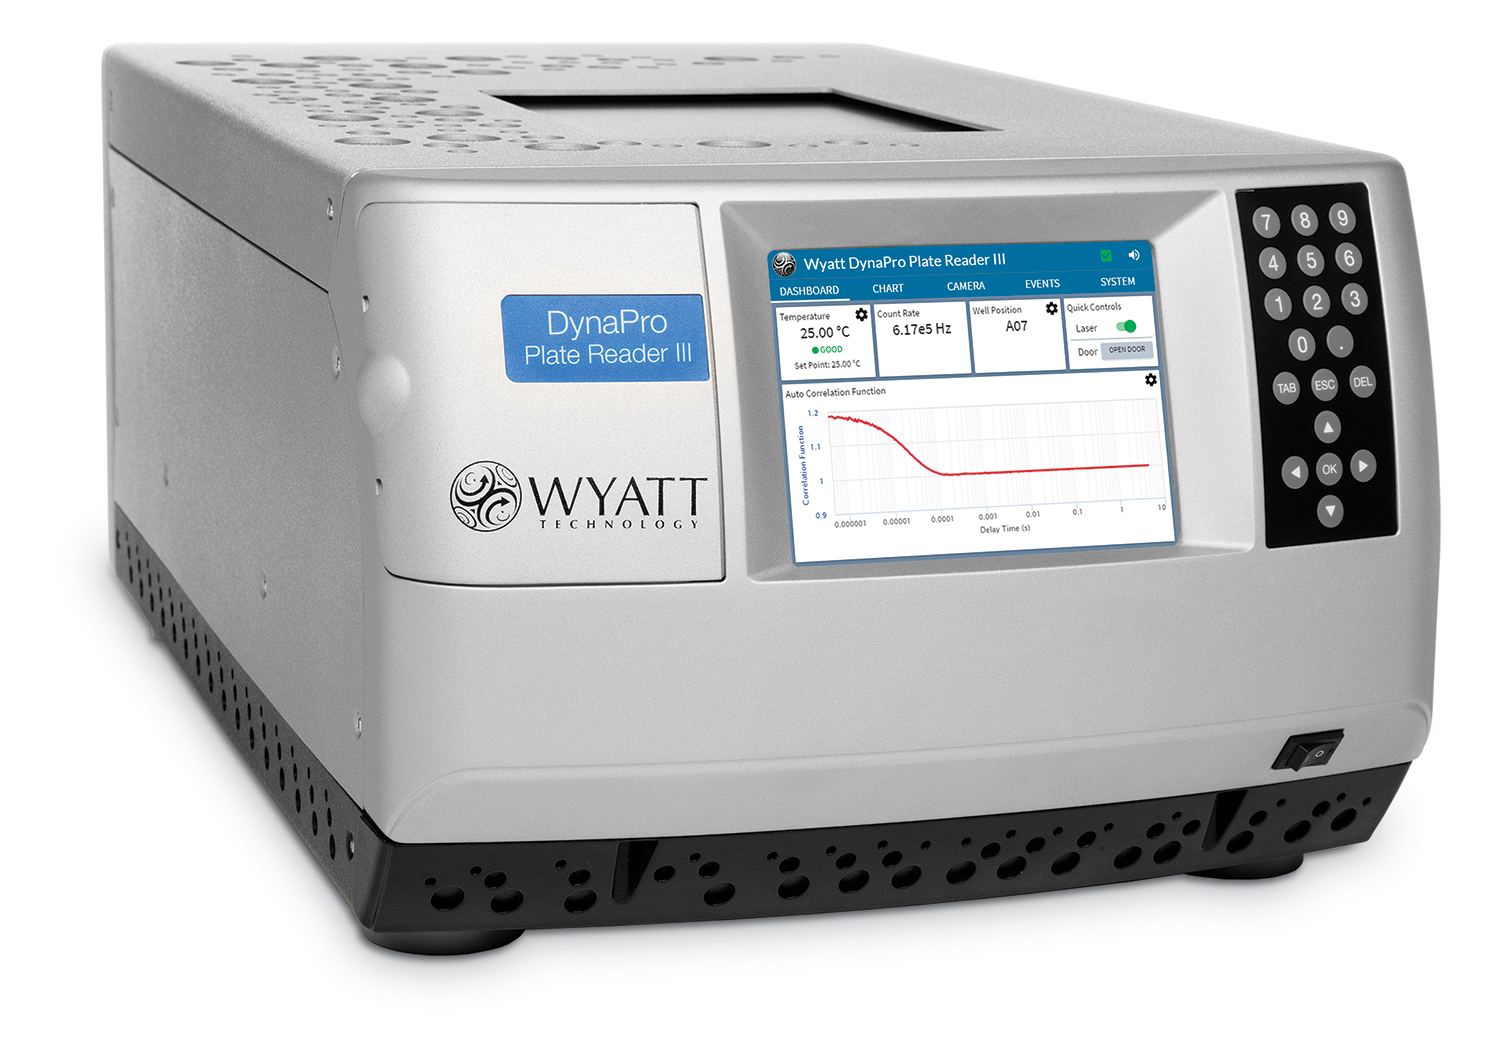 DynaPro Plate Reader III, particle size analysis, size exclusion chromatography, nanoparticle size, nanoparticle analysis